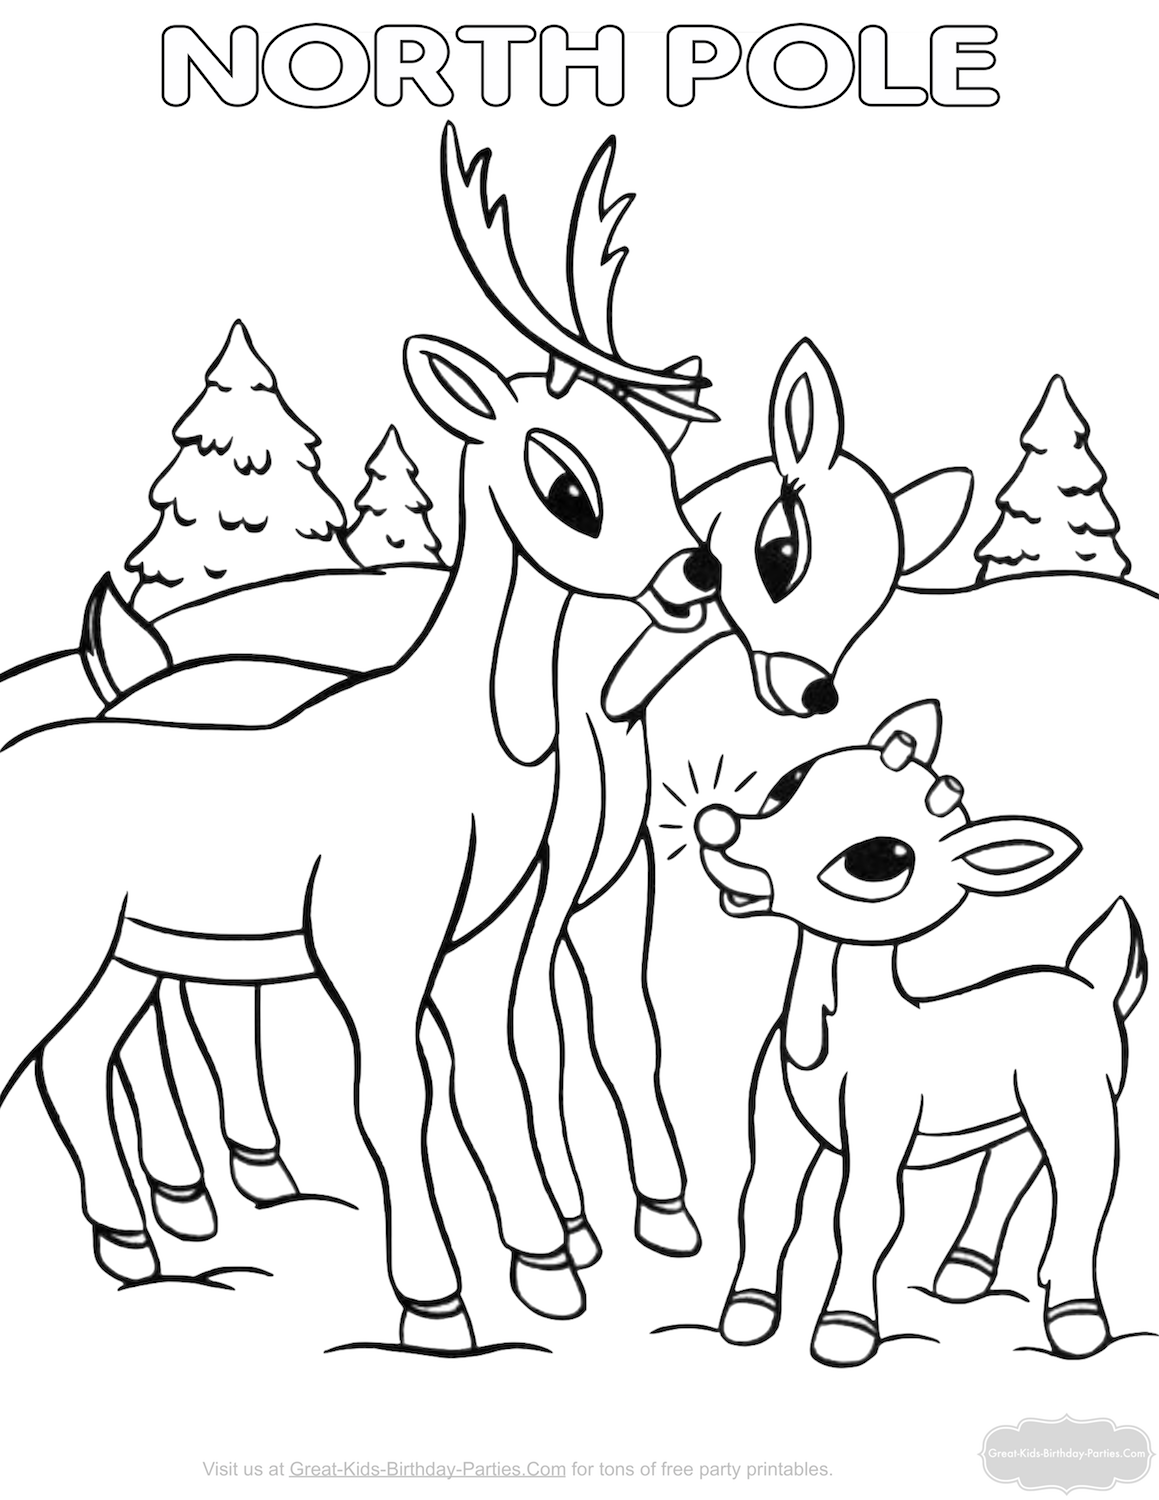 Free Christmas Coloring Pages | *~Christmas Delights!~* | Pinterest ...